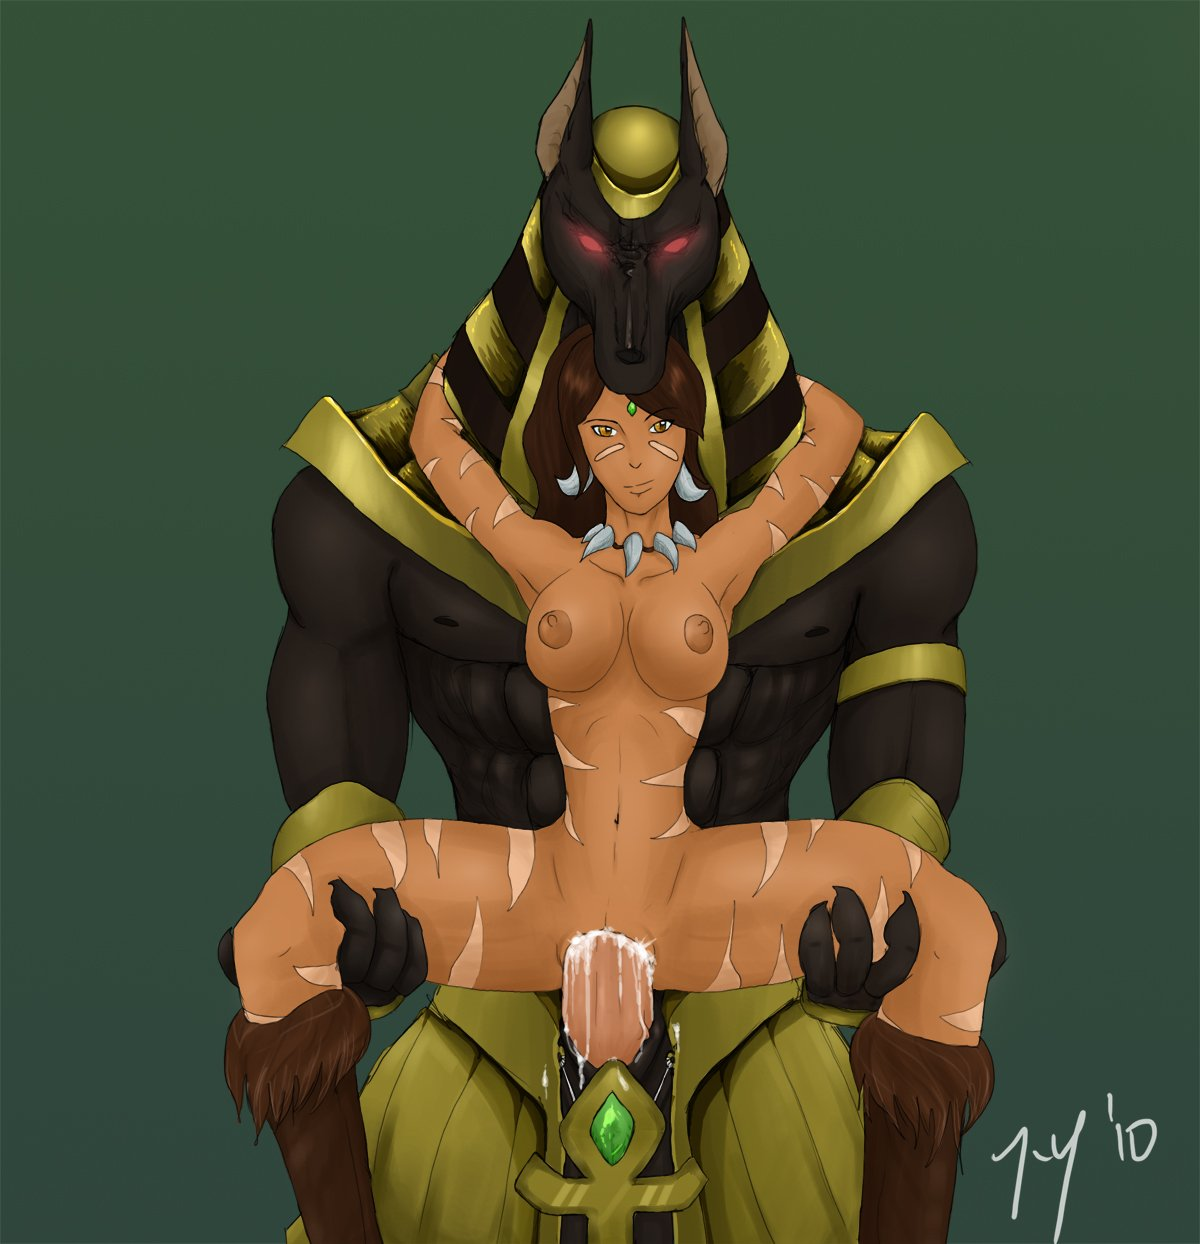 League of legends porno sex nsfw lady